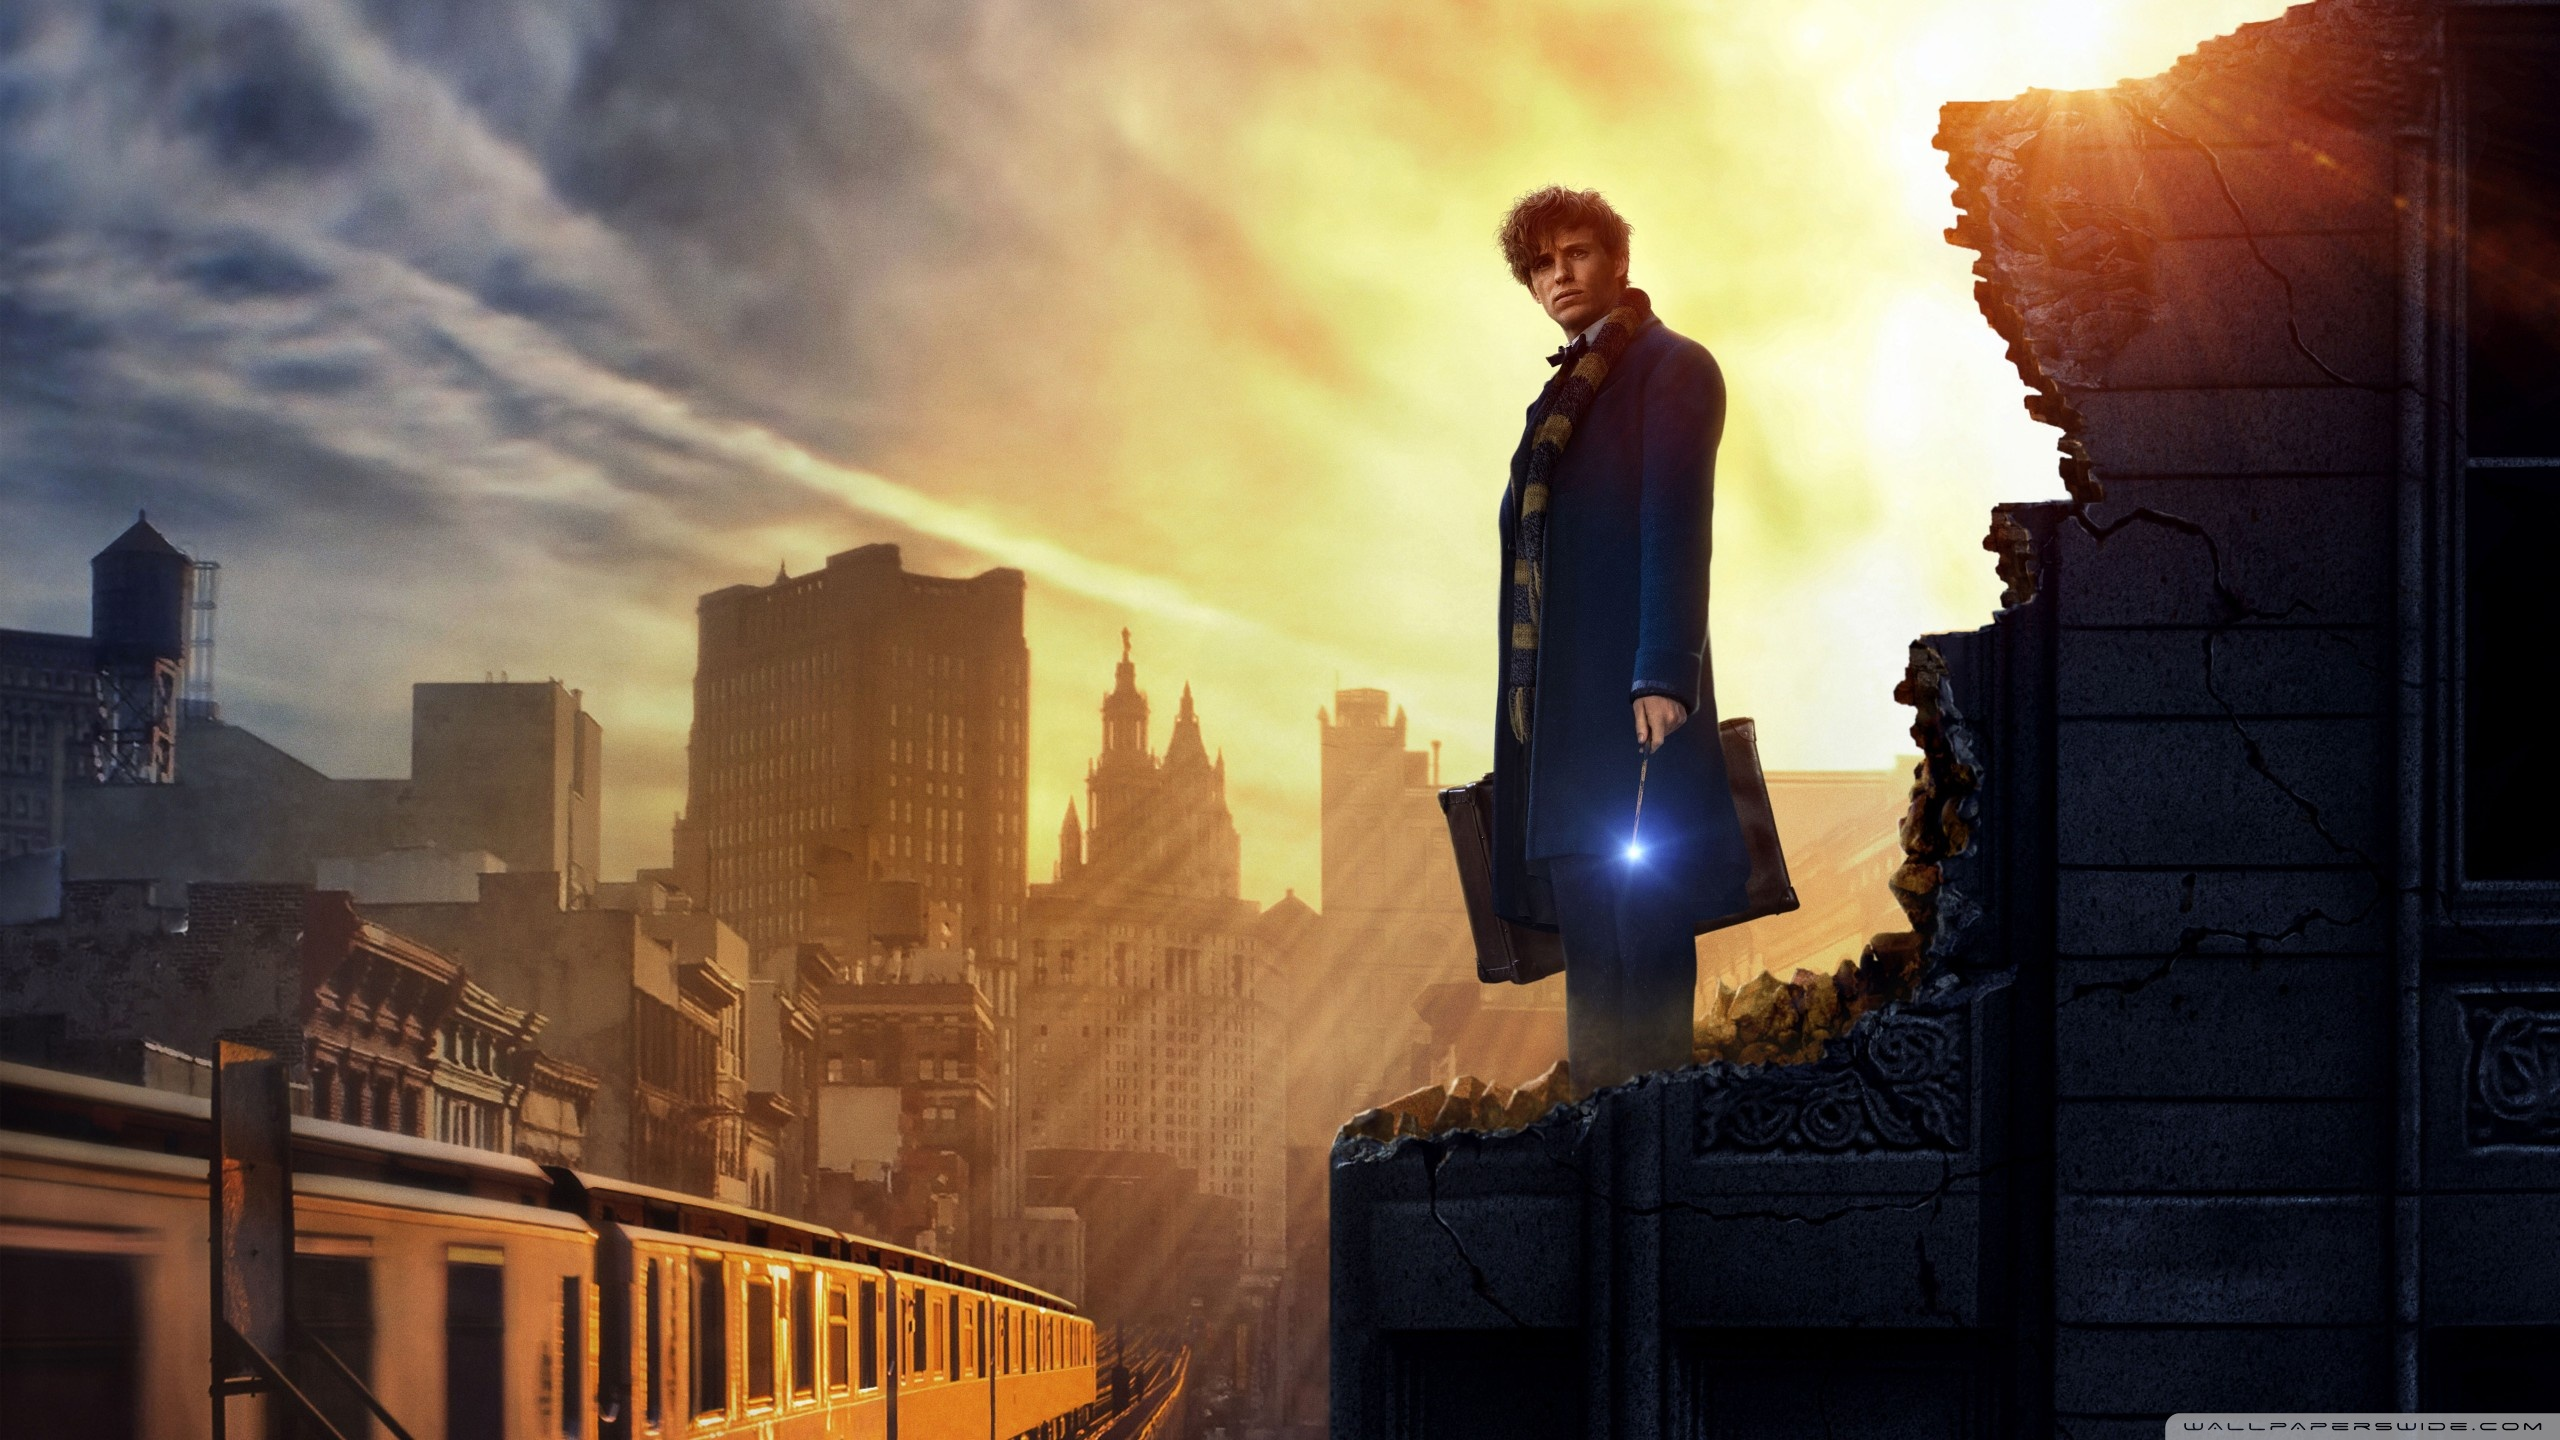 Fantastic Beasts and Where to Find Them 4K HD Desktop Wallpaper 2560x1440